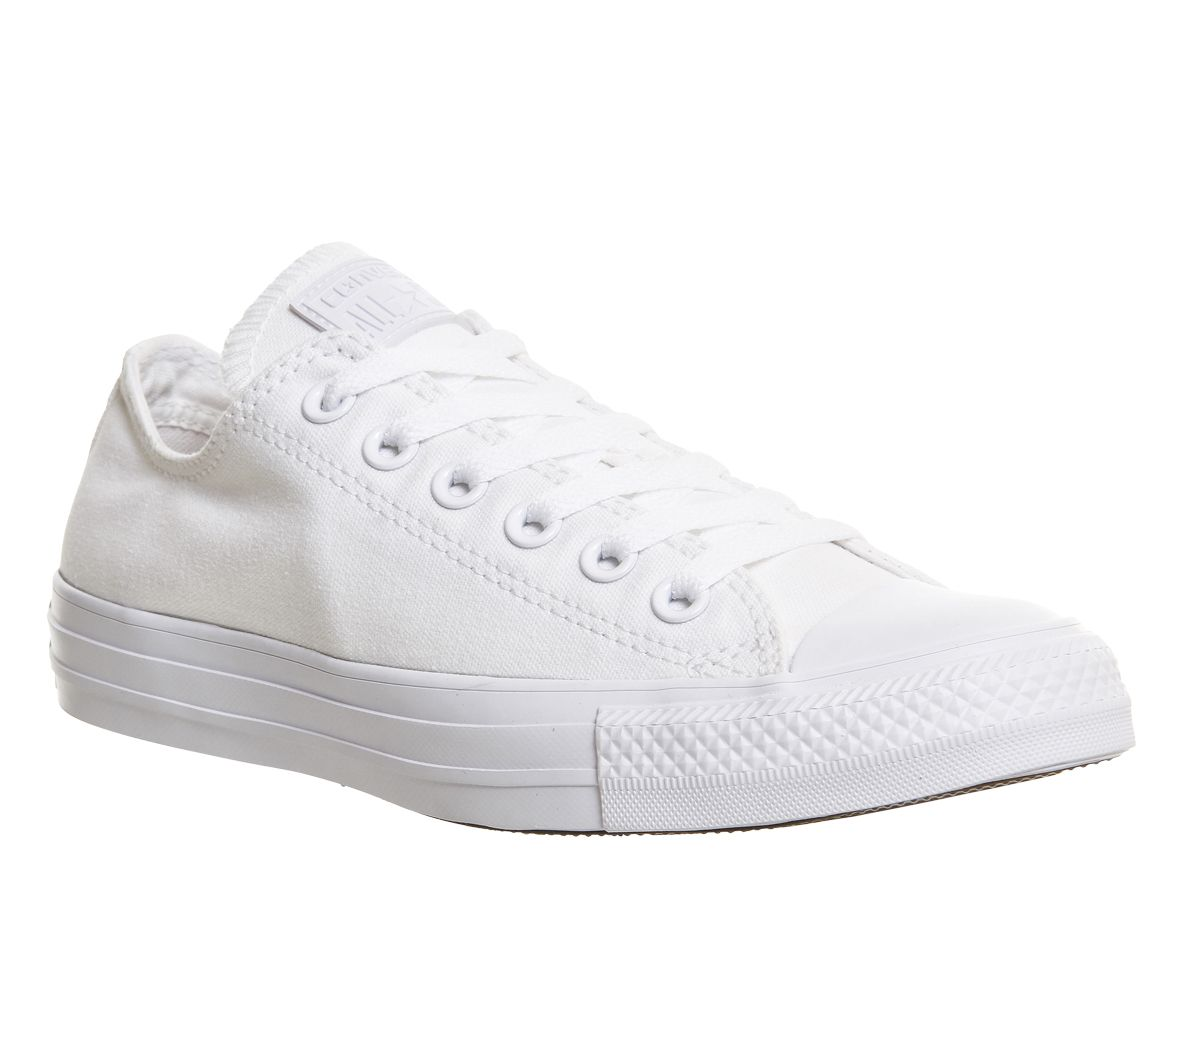 5dea8a9cce3e Converse All Star Low White Mono Canvas - Unisex Sports